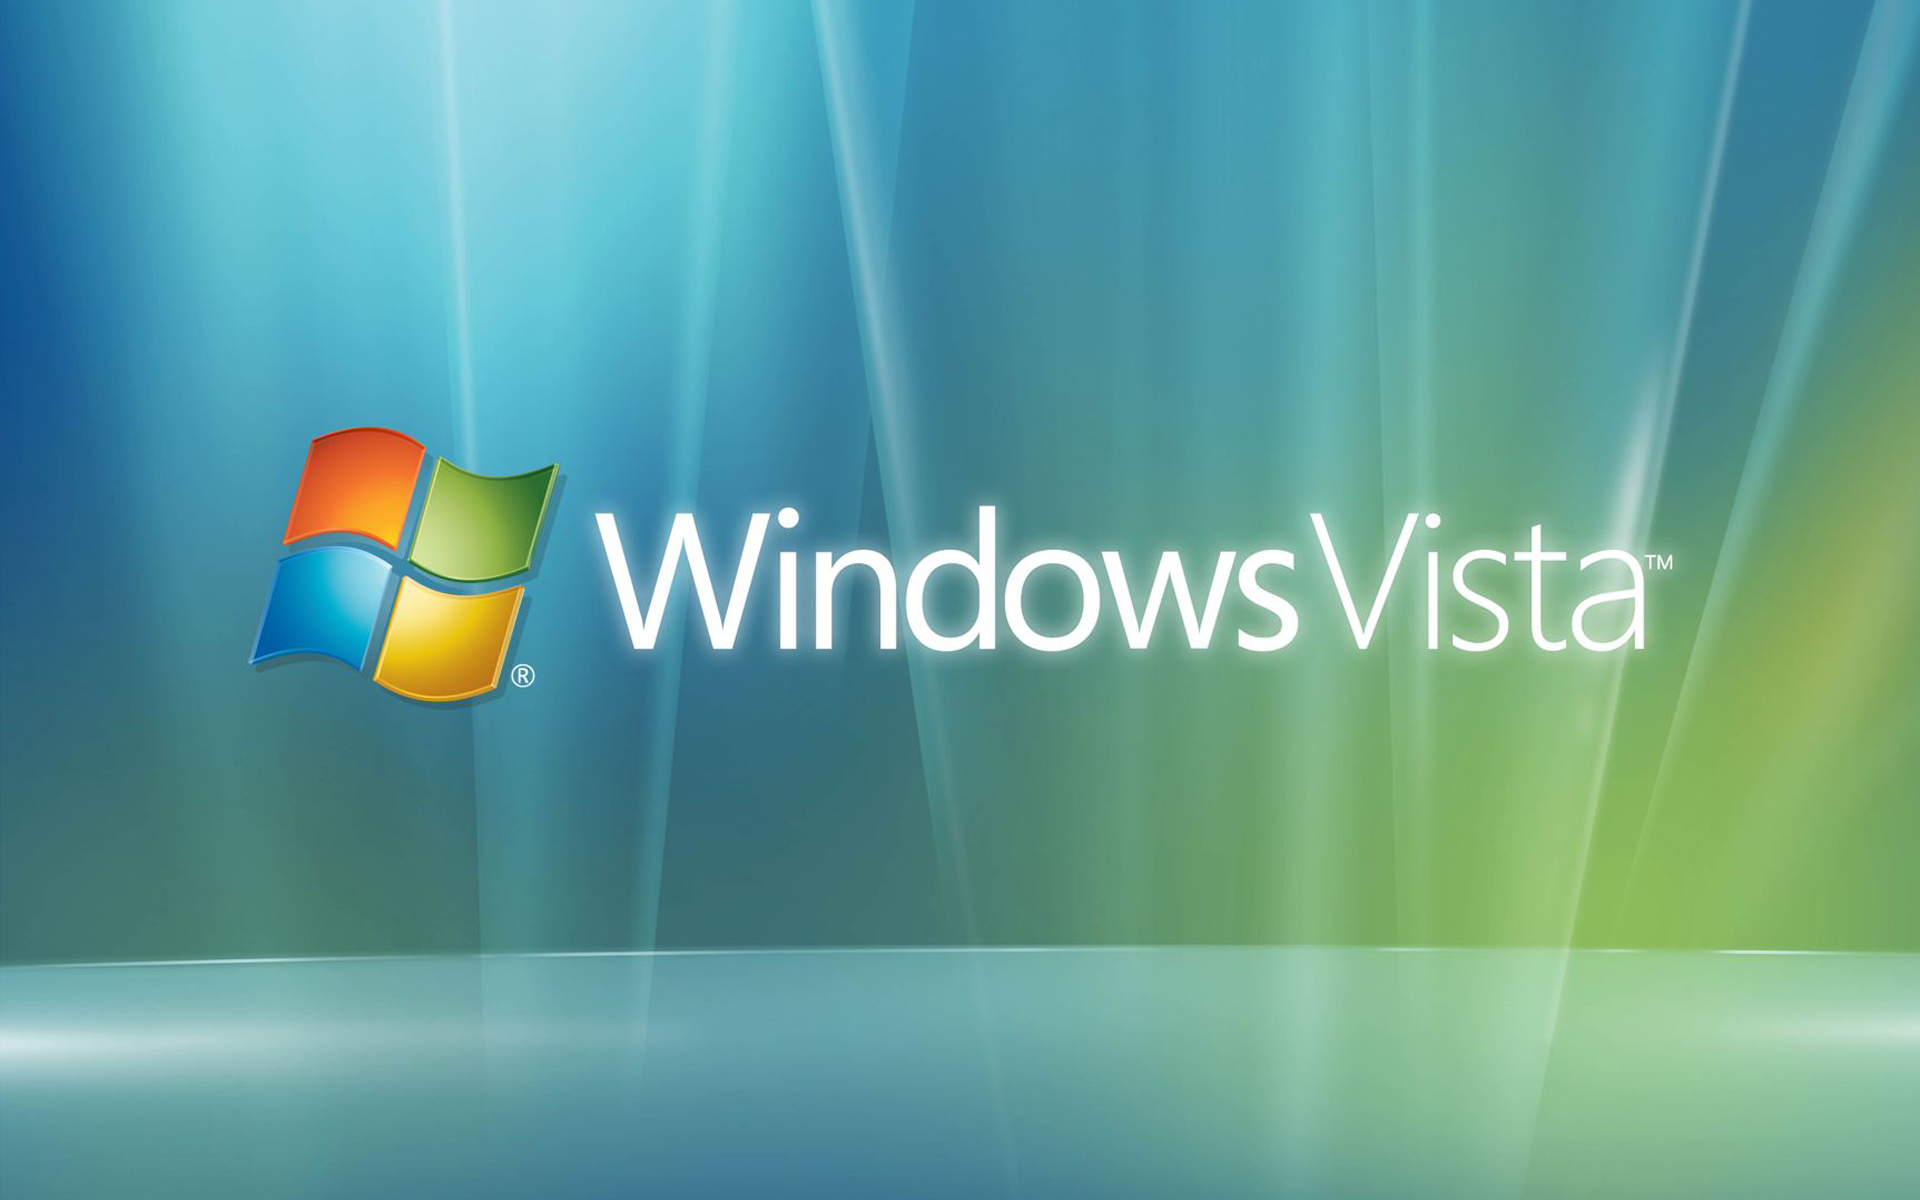 Windows Vista | Extended Support Expires in April 2017 | IT Pro